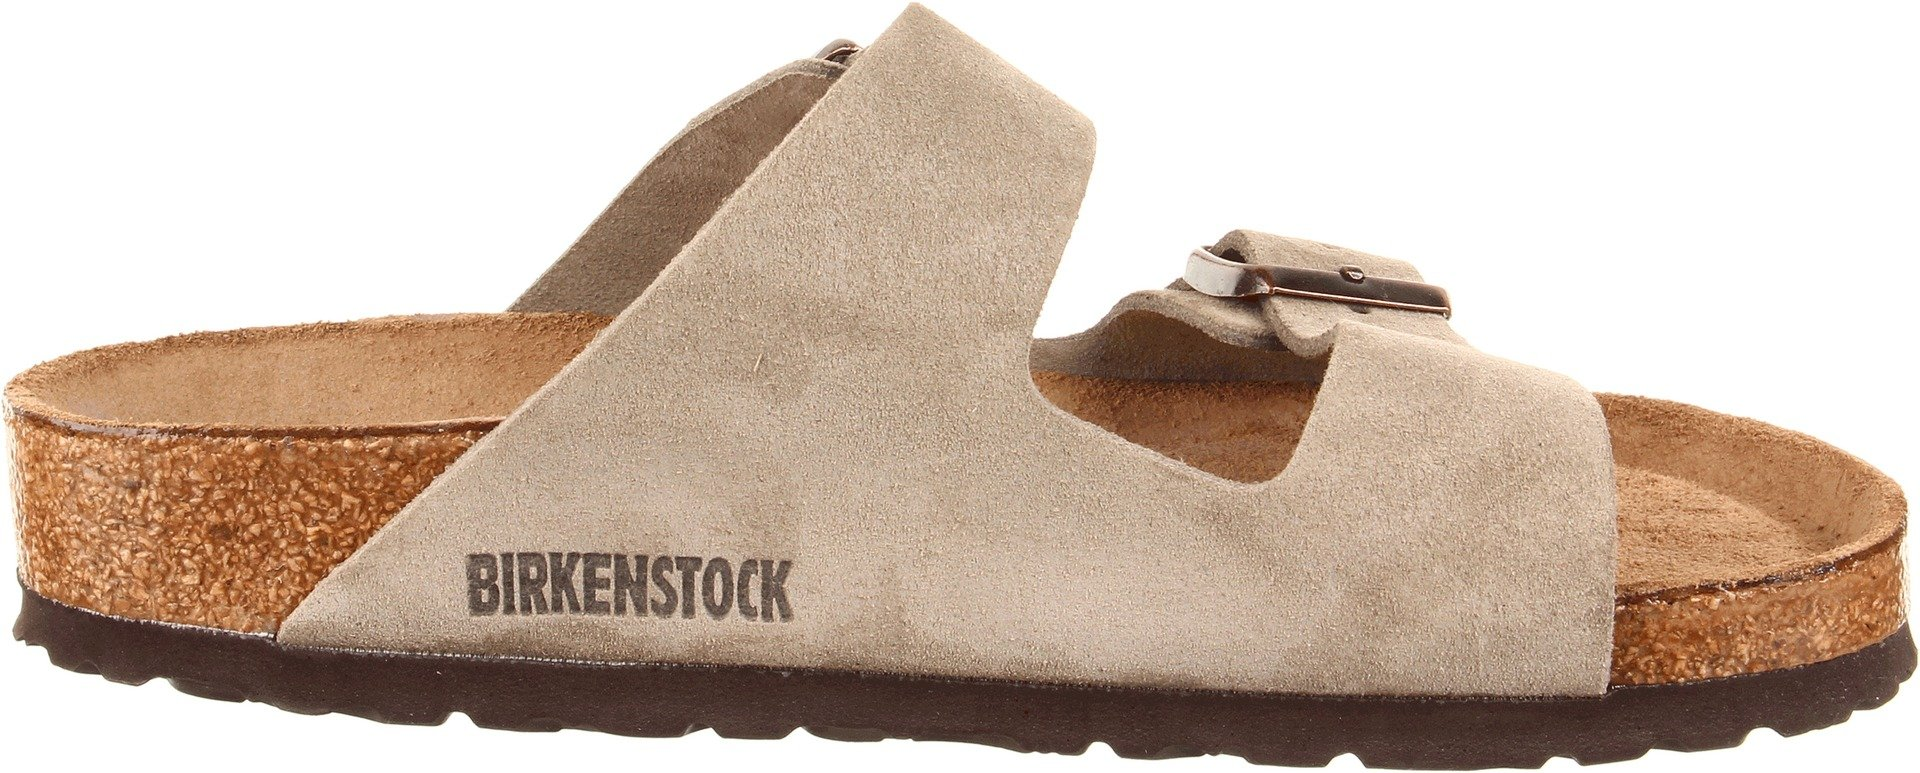 Birkenstock Unisex Arizona Taupe Suede Soft Foot Bed Sandals - 38 M EU / 7-7.5 B(M) US by Birkenstock (Image #6)